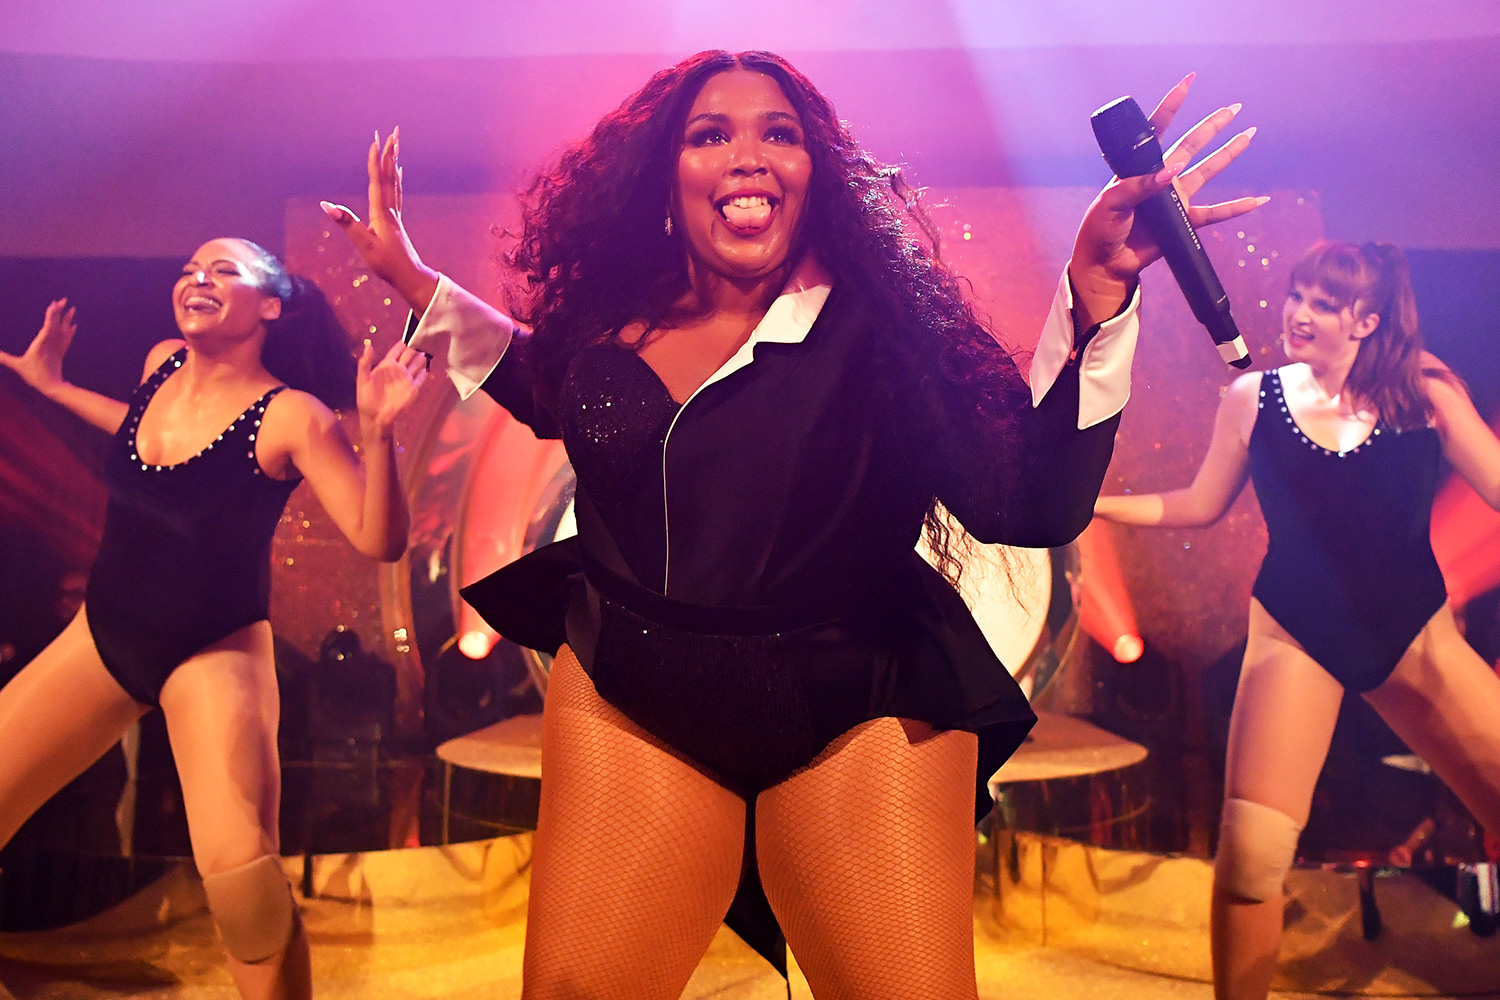 Lizzo performs onstage during the Warner Music Group Pre-Grammy Party at Hollywood Athletic Club on January 23, 2020 in Hollywood, California